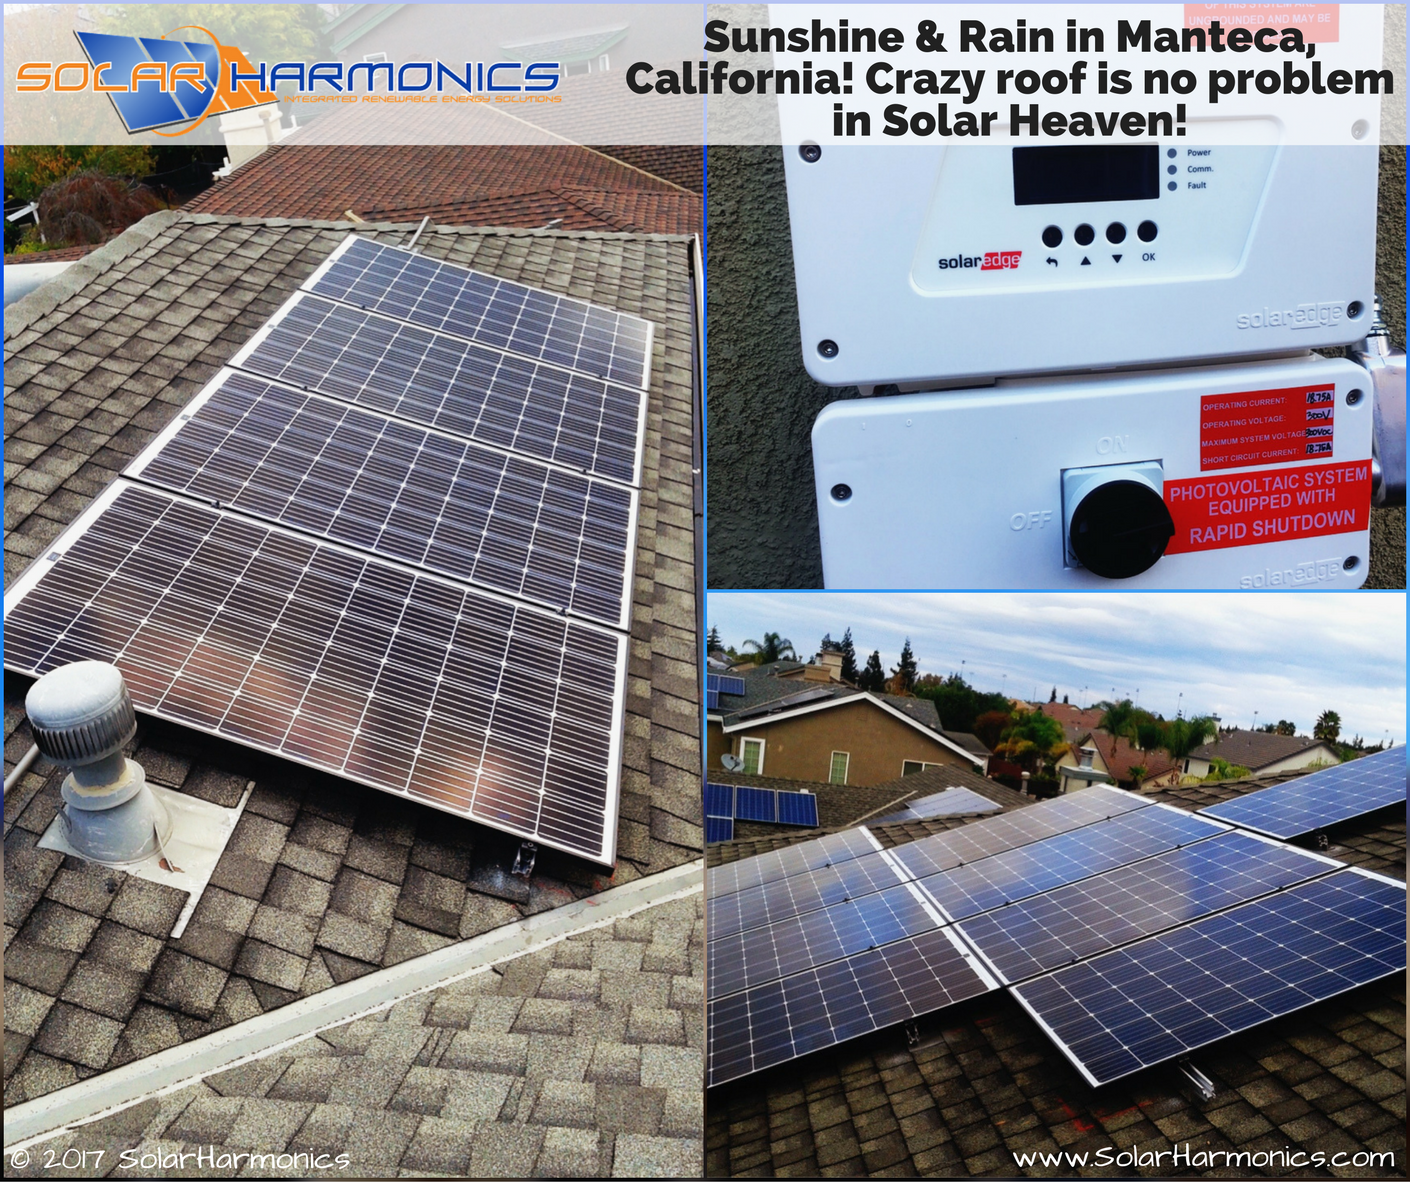 manteca-solar-panel-very-best-top-premier-awesome-solar-installation-installer-company-4